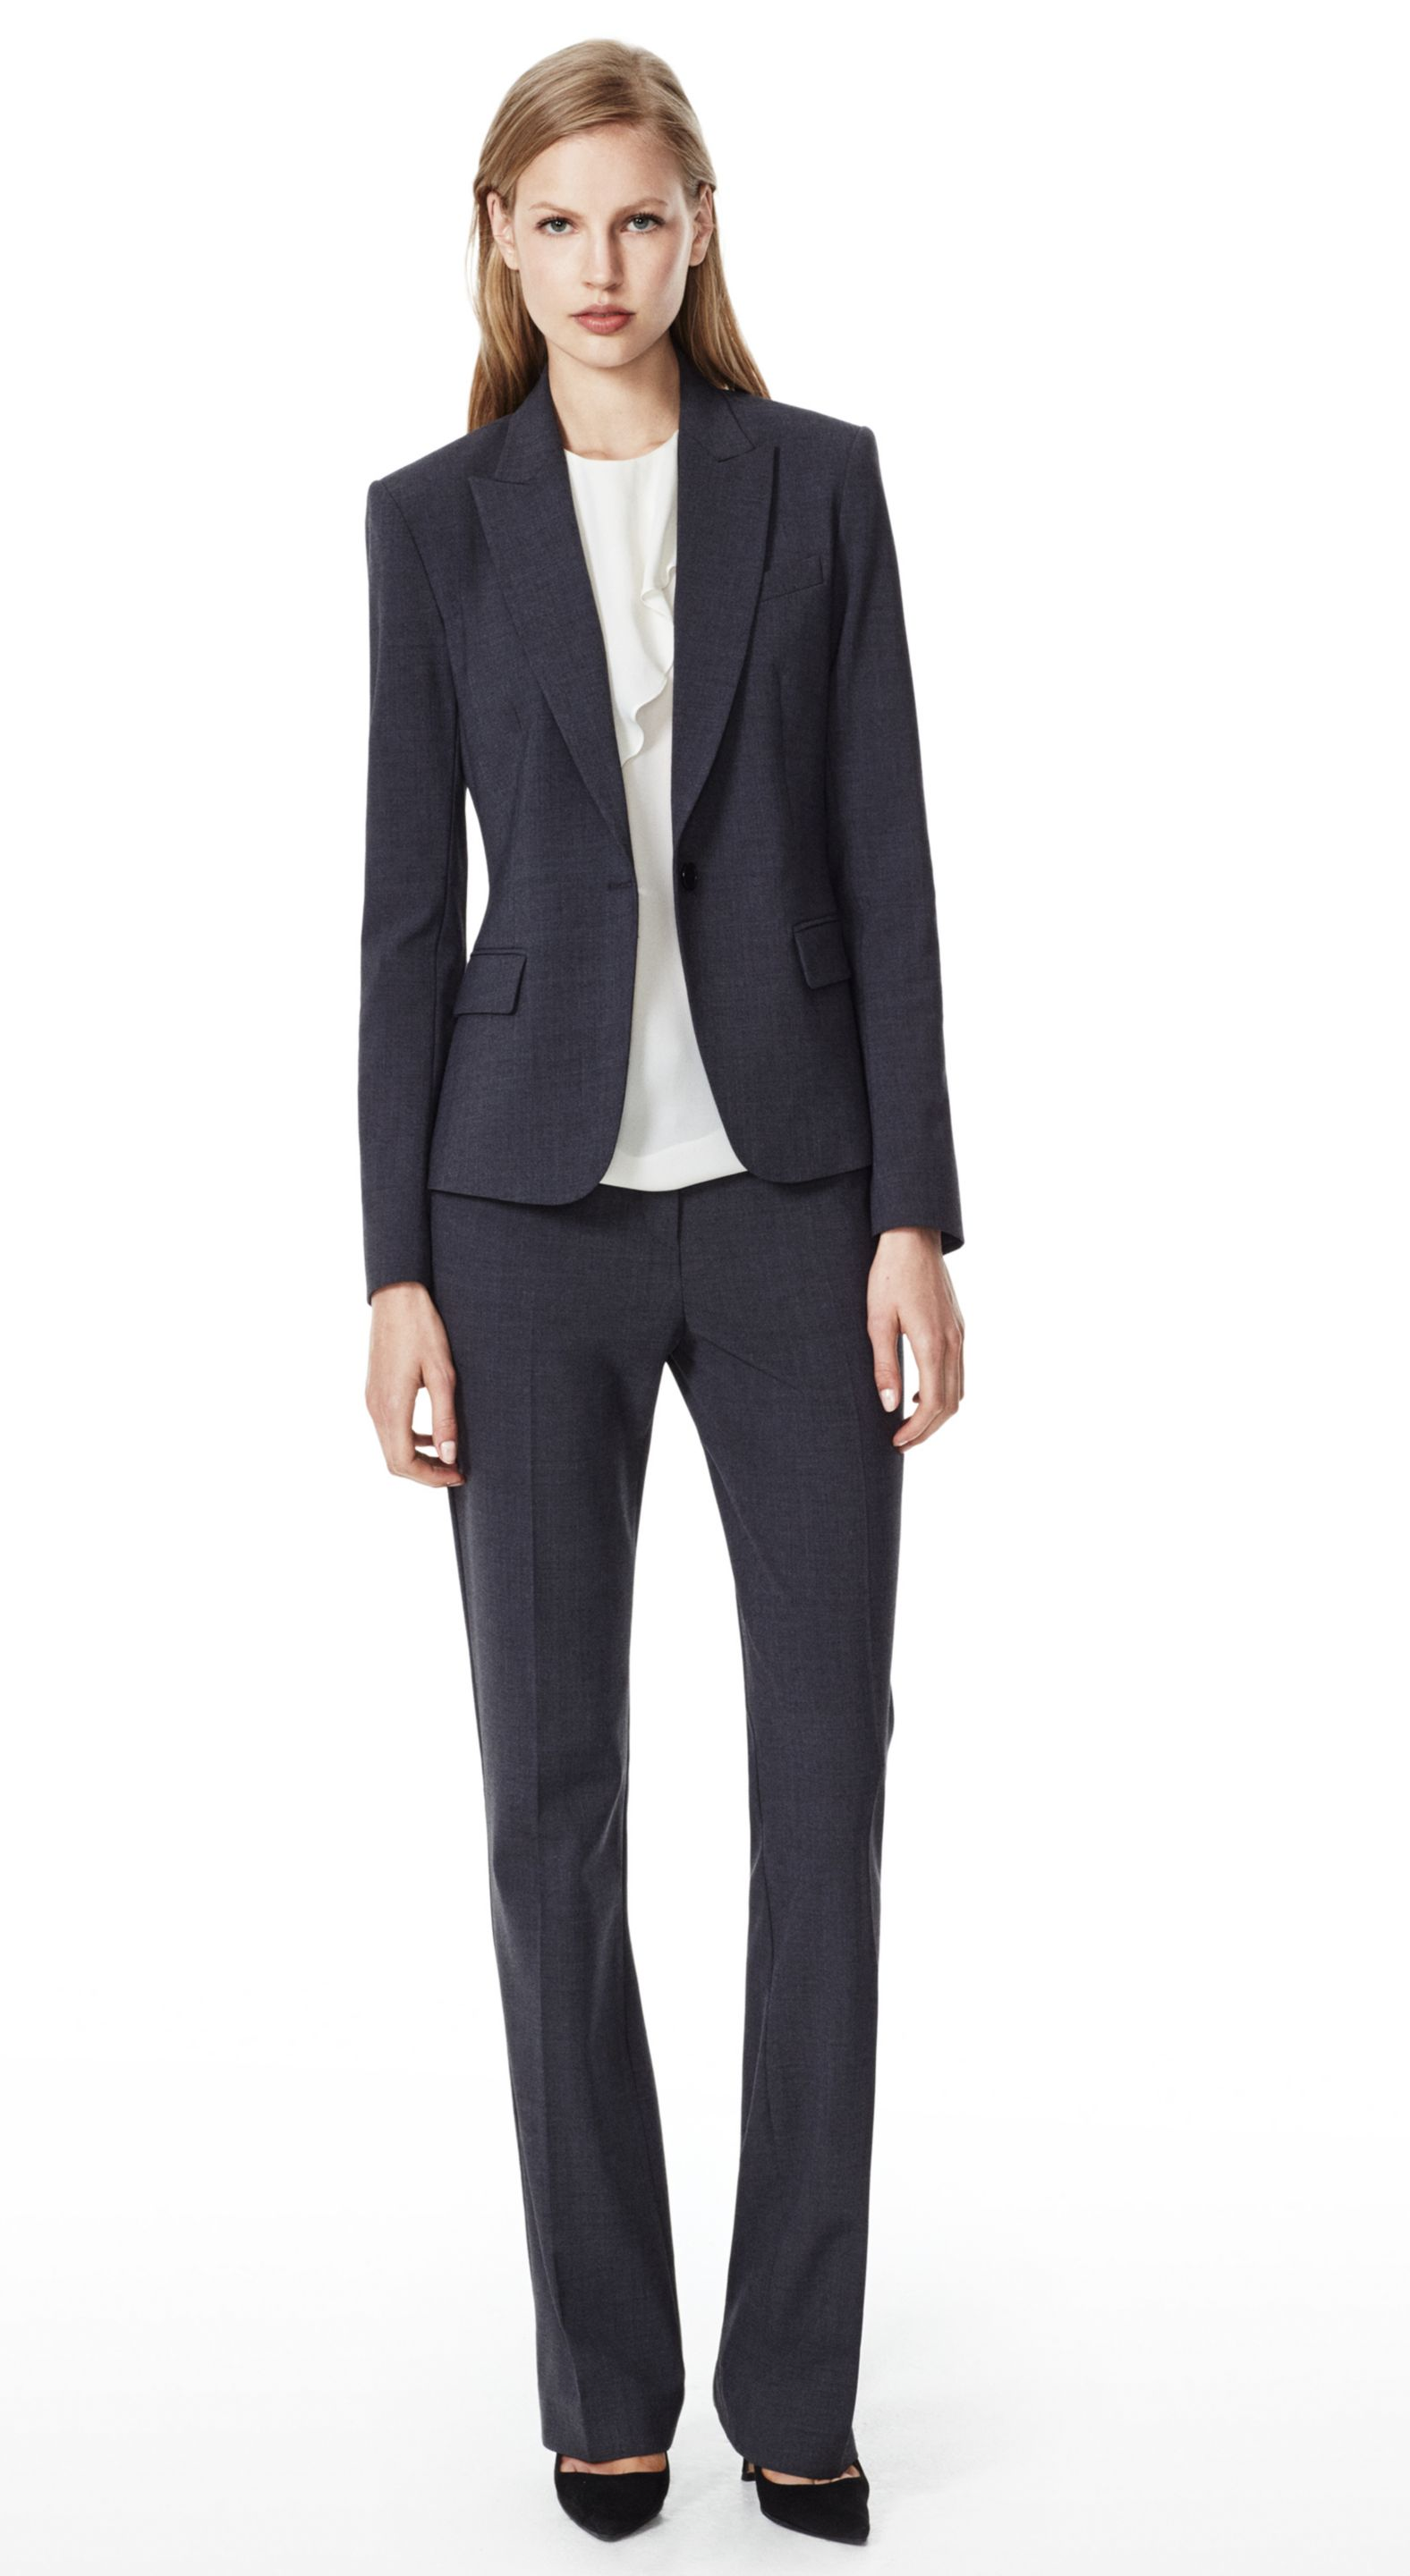 Womens Suits | Suit Jackets and Suit Pants | Theory